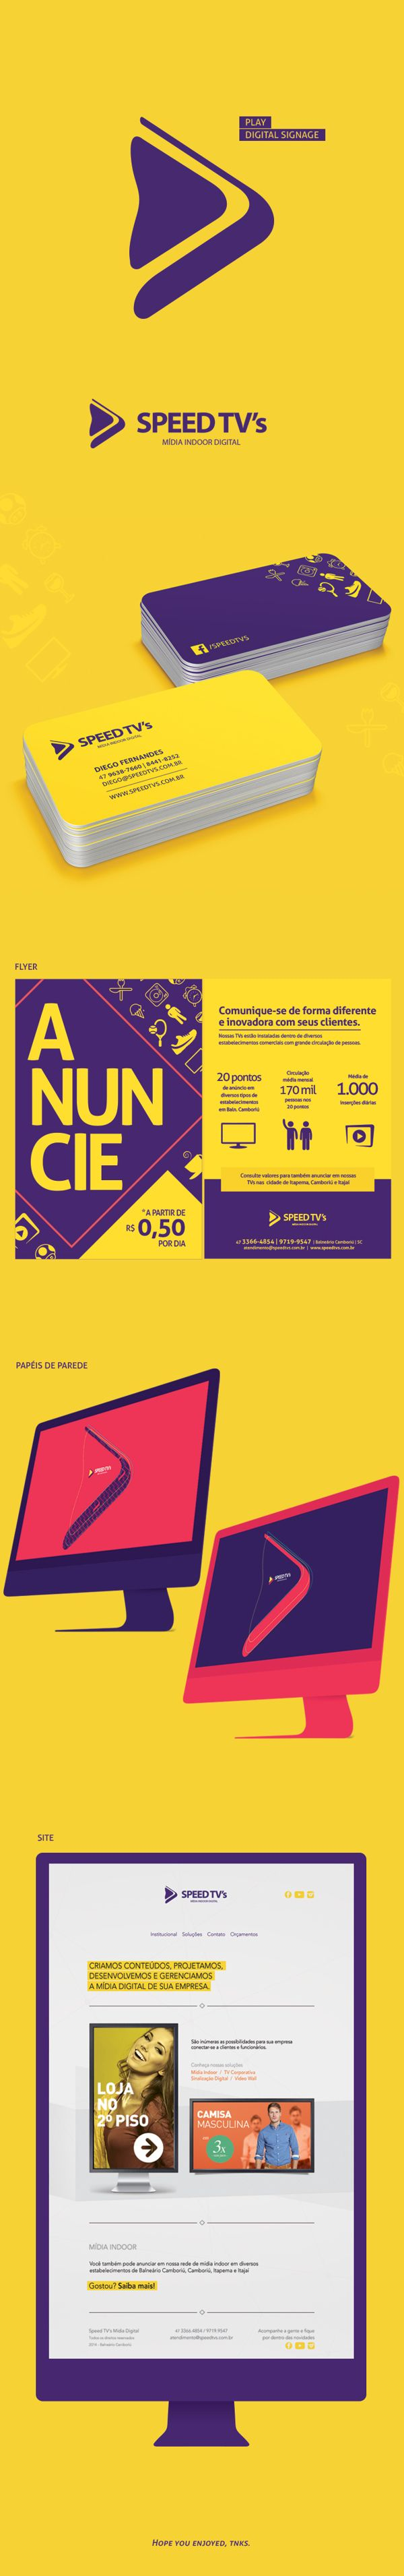 Speed TV's - Mídia Indoor Digital by Dalvan Fernandes, via Behance